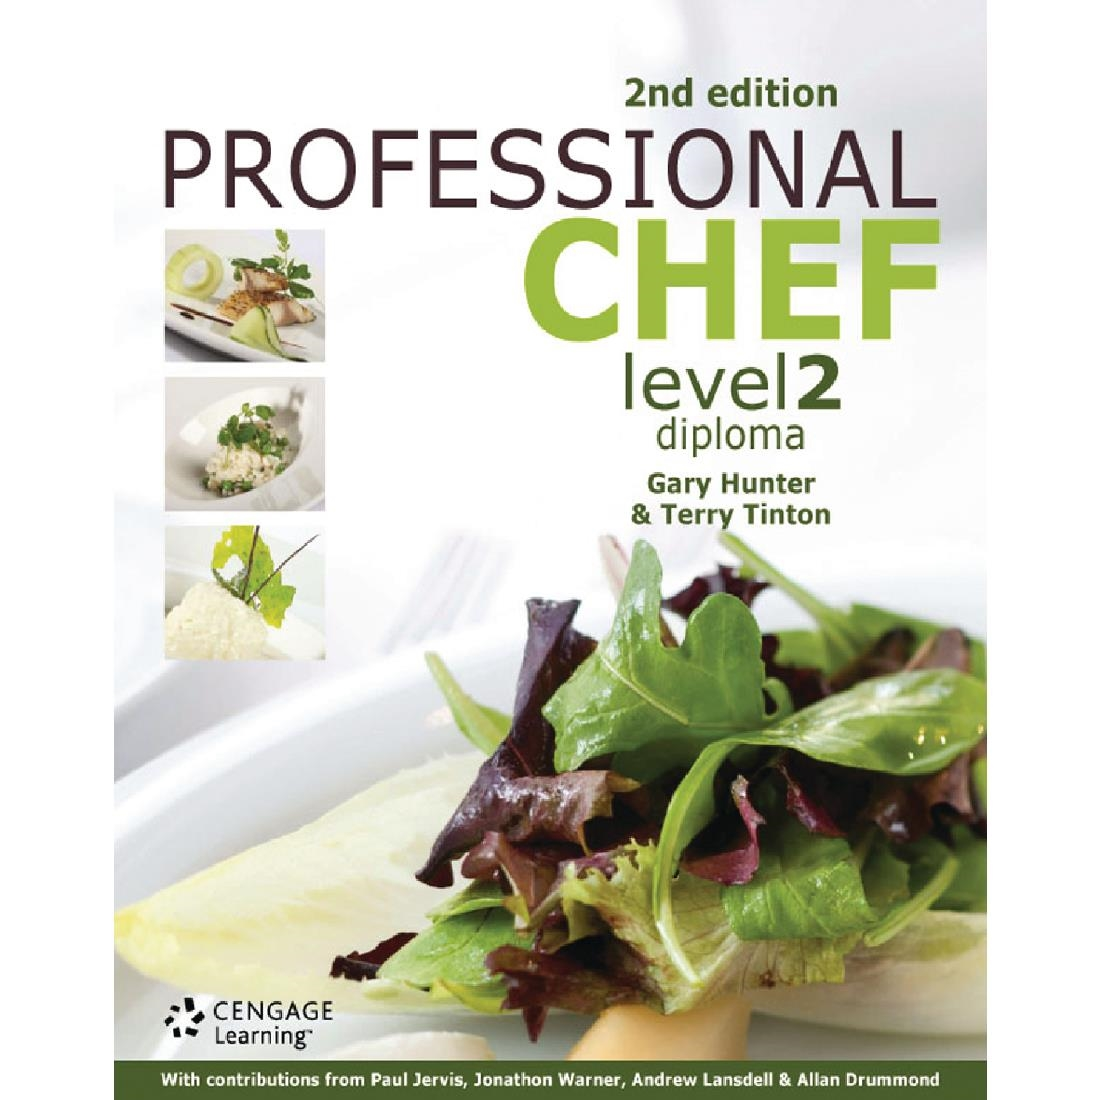 Image of Professional Chef Level 2 Diploma - 2nd edition